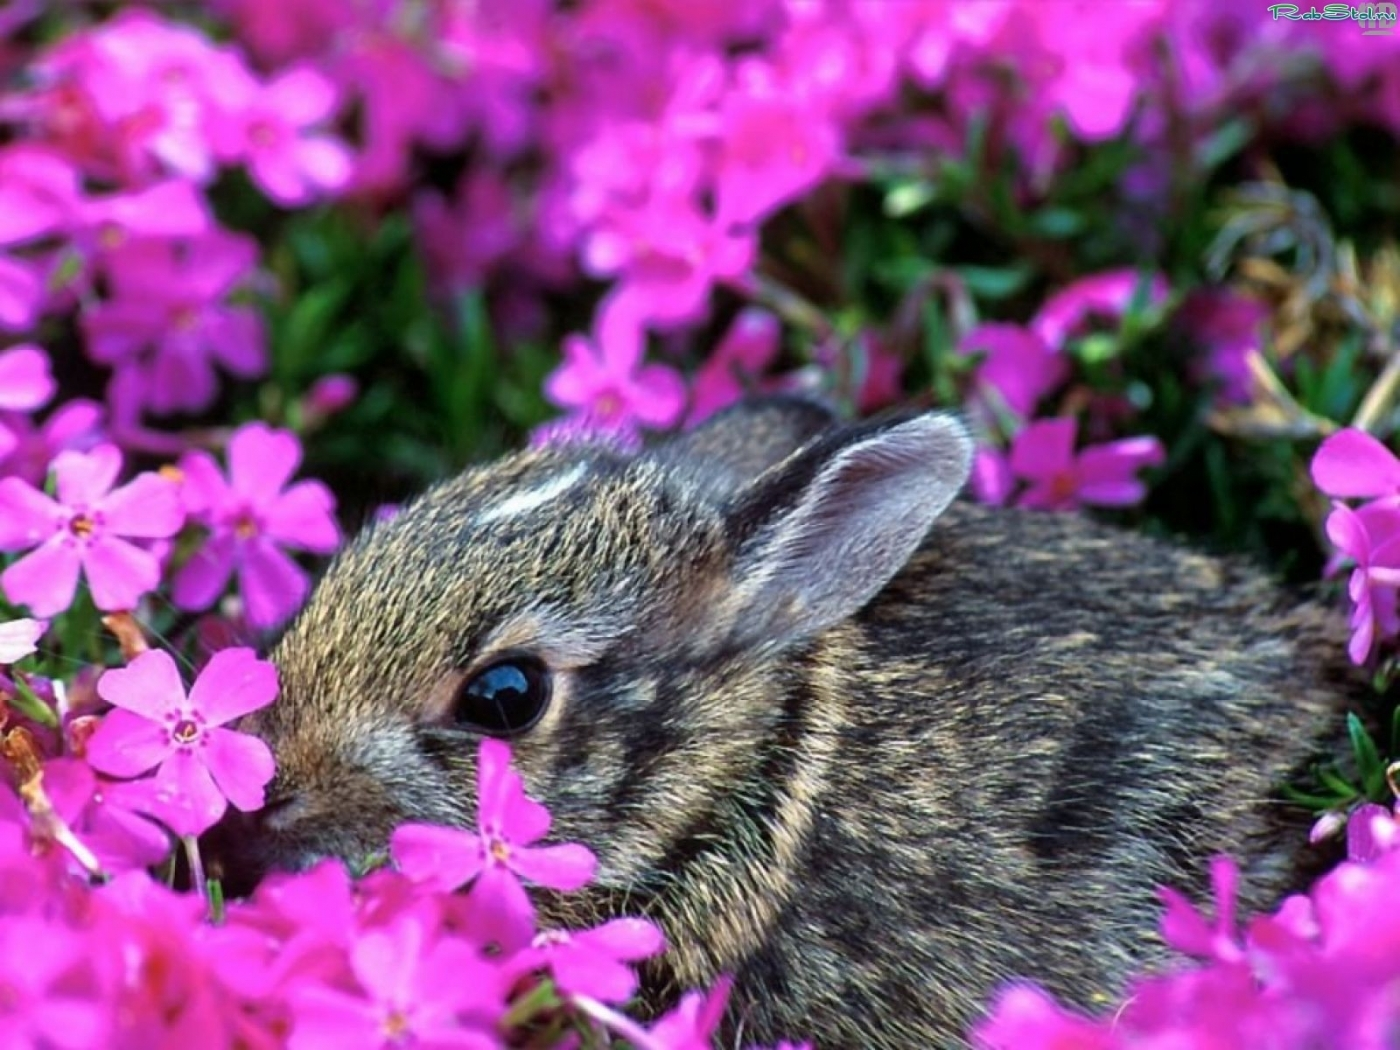 27916 download wallpaper Animals, Rabbits screensavers and pictures for free